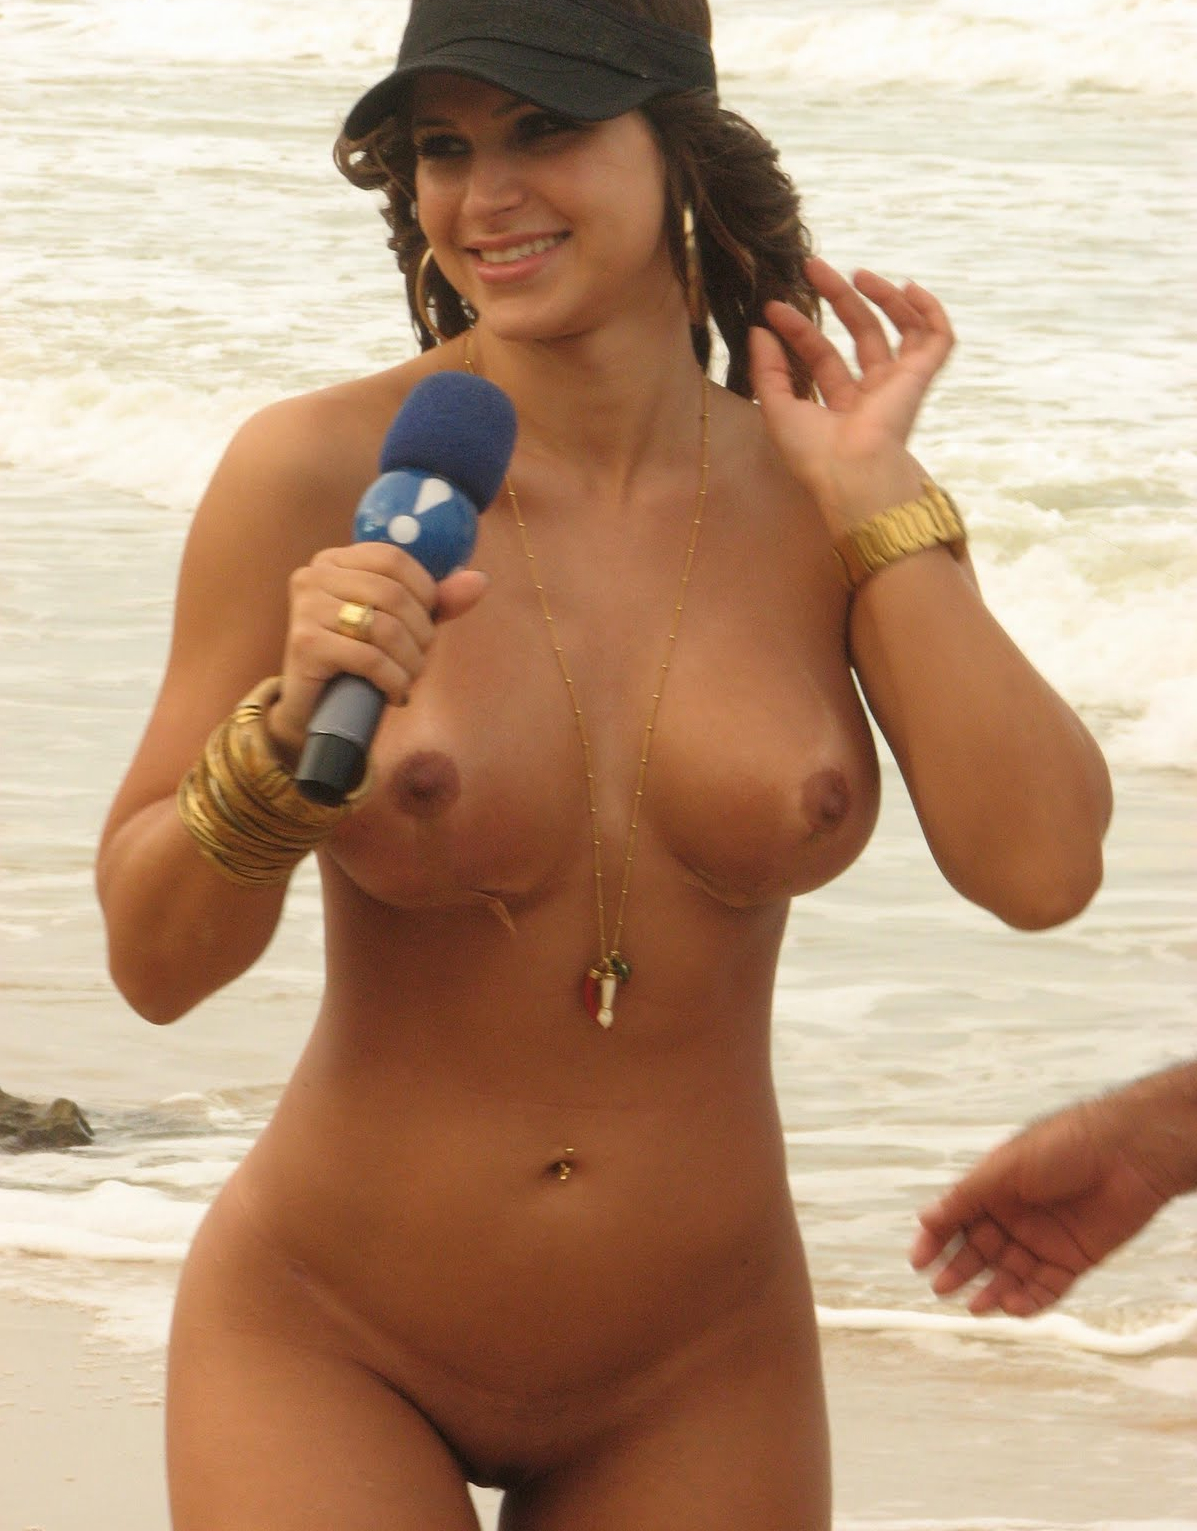 boy-hot-naked-brazilian-beach-bitty-slut-sex